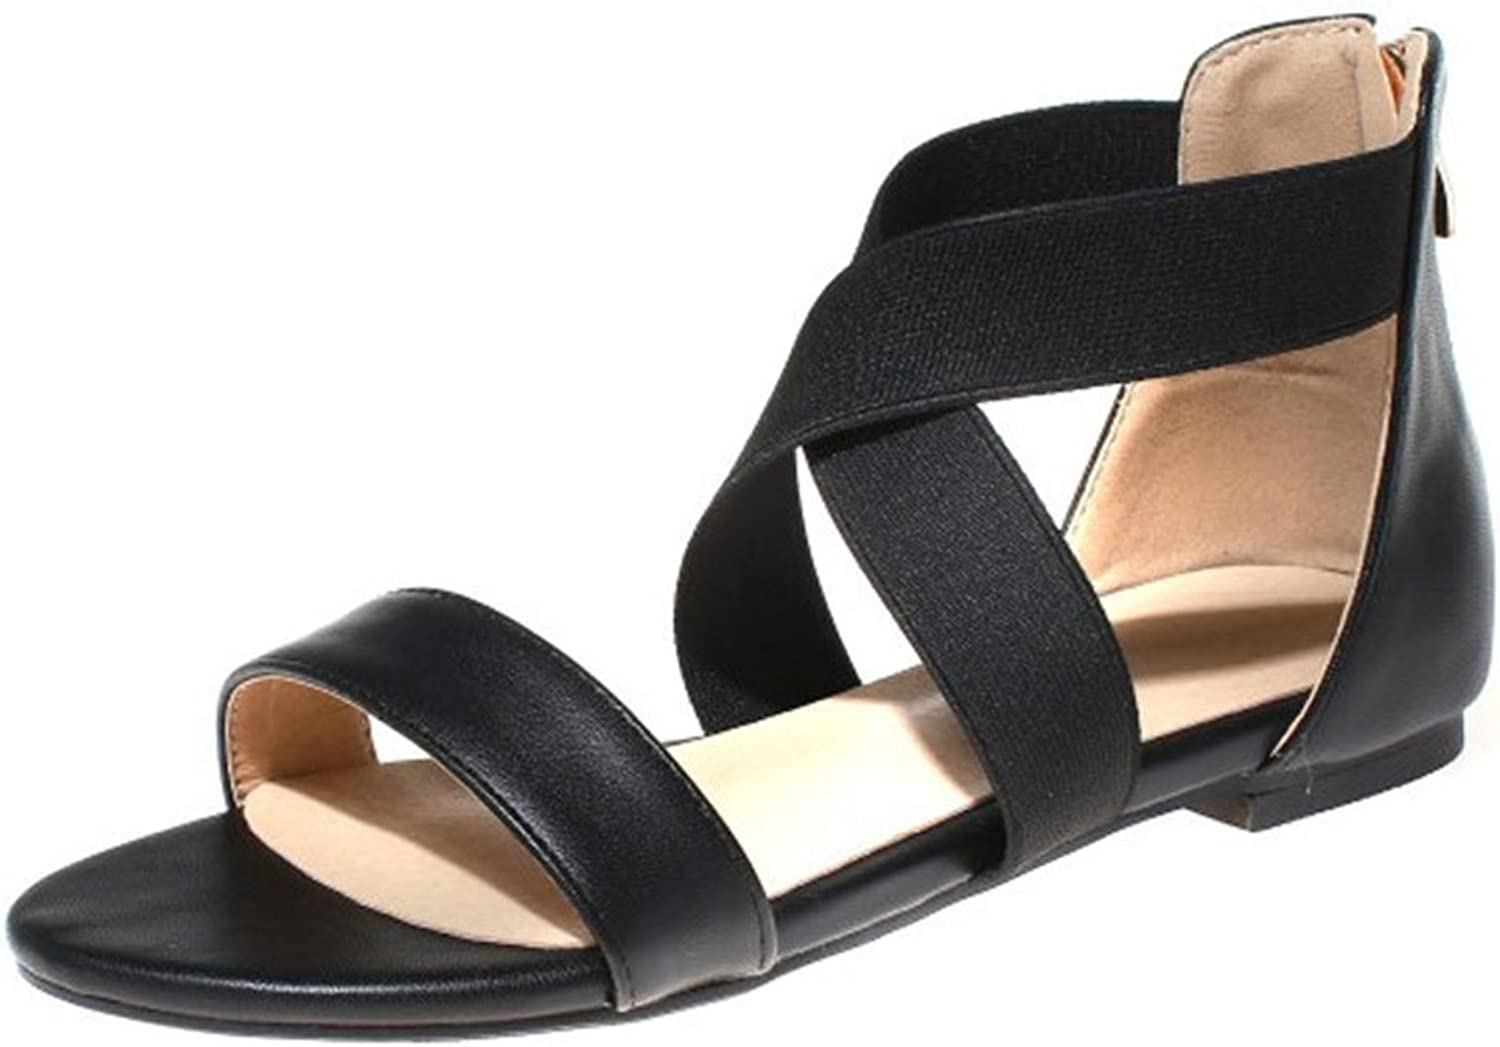 CYBLING Womens Summer Criss Cross Gladiator Open Toe Elastic Ankle Strap Flat Sandals